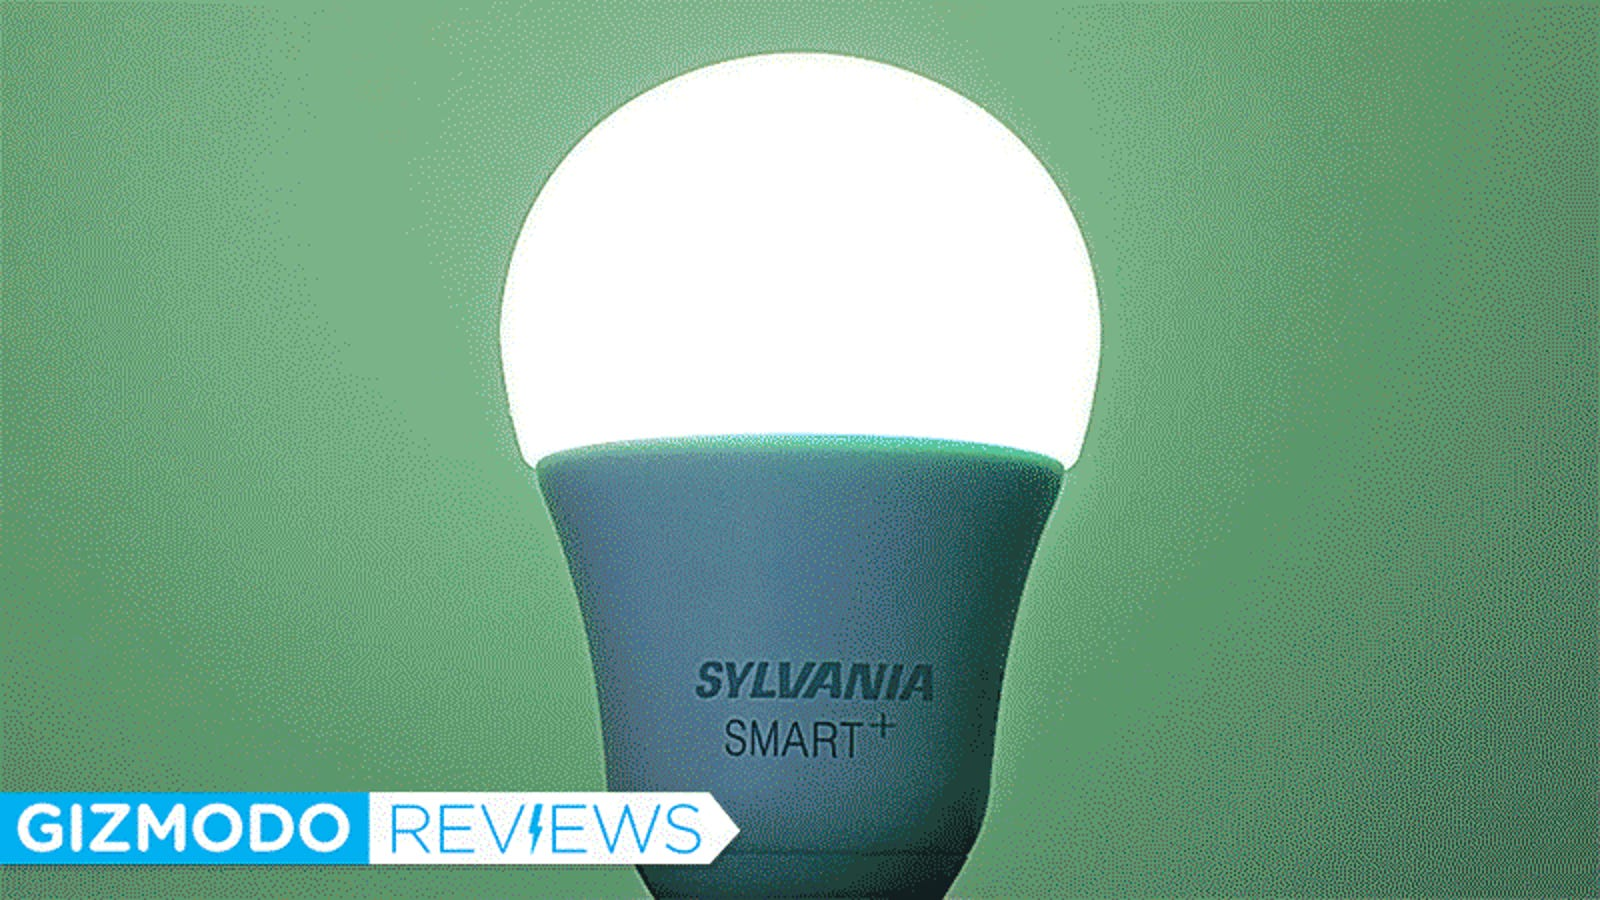 I Wish All Smart Home Upgrades Were as Easy as This Light Bulb